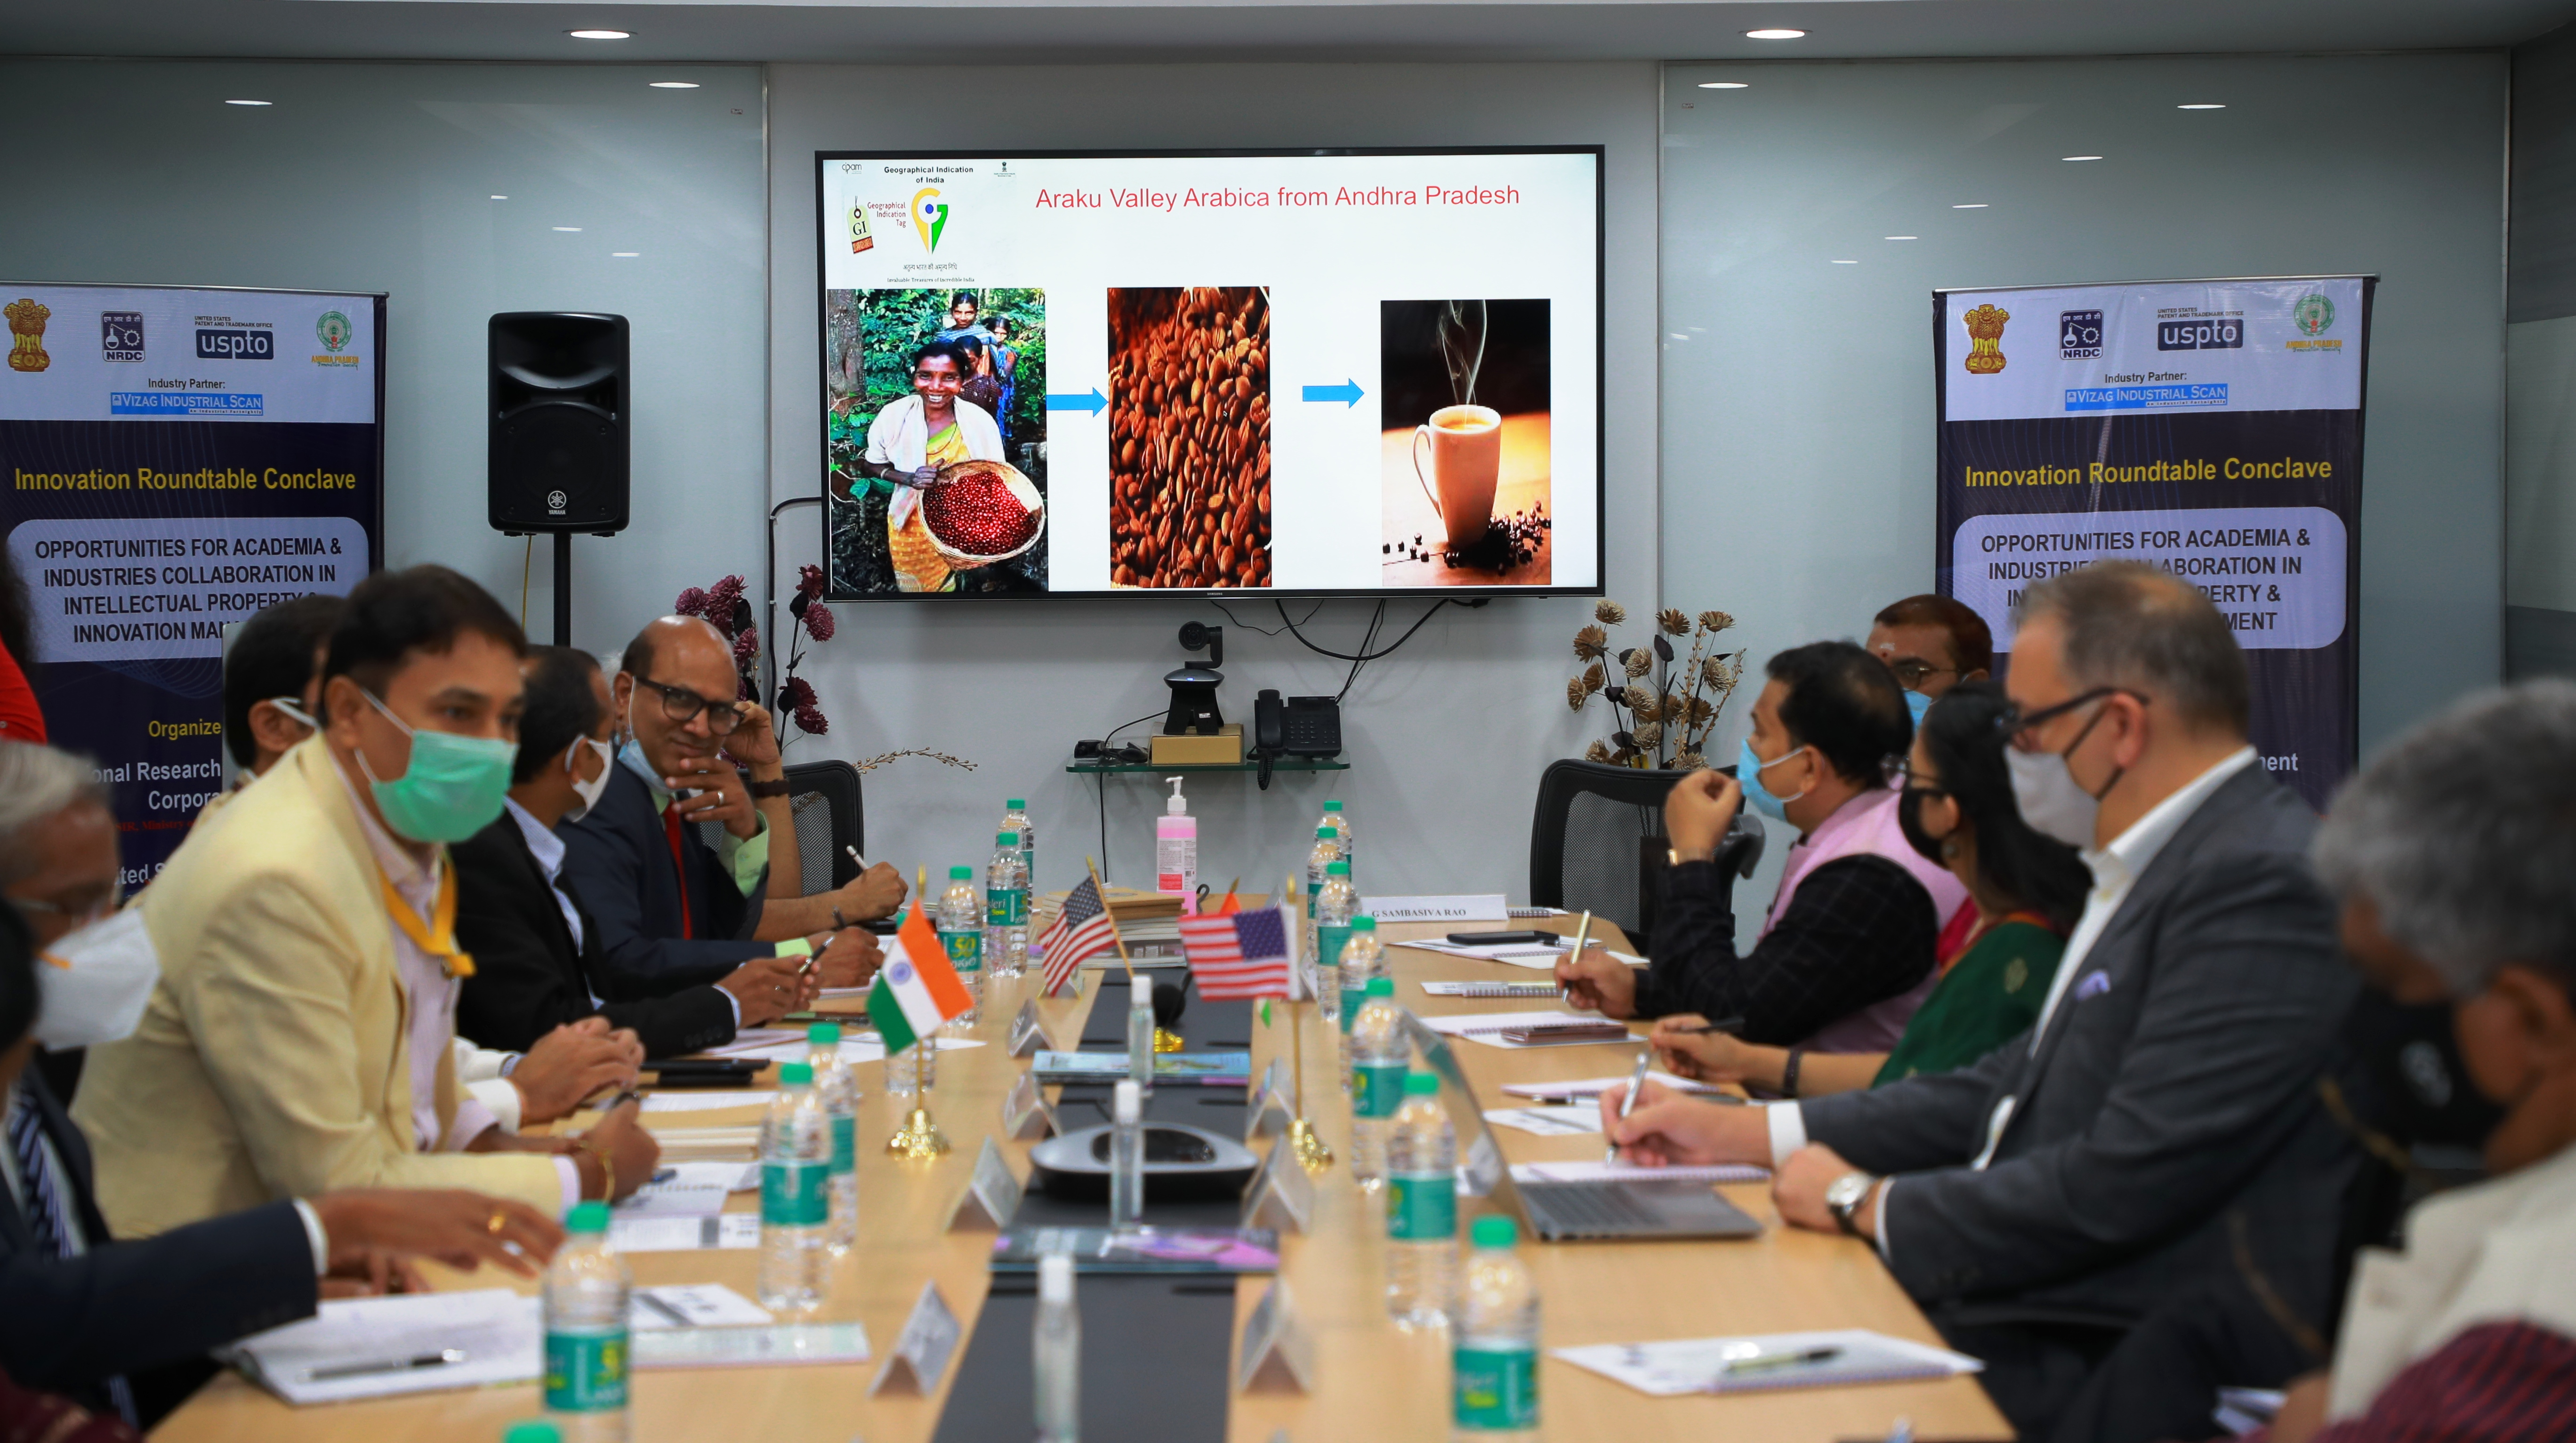 """INNOVATION ROUNDTABLE CONCLAVE: """"Opportunities for Academia & Industries Collaboration in Intellectual Property & Innovation Management"""""""